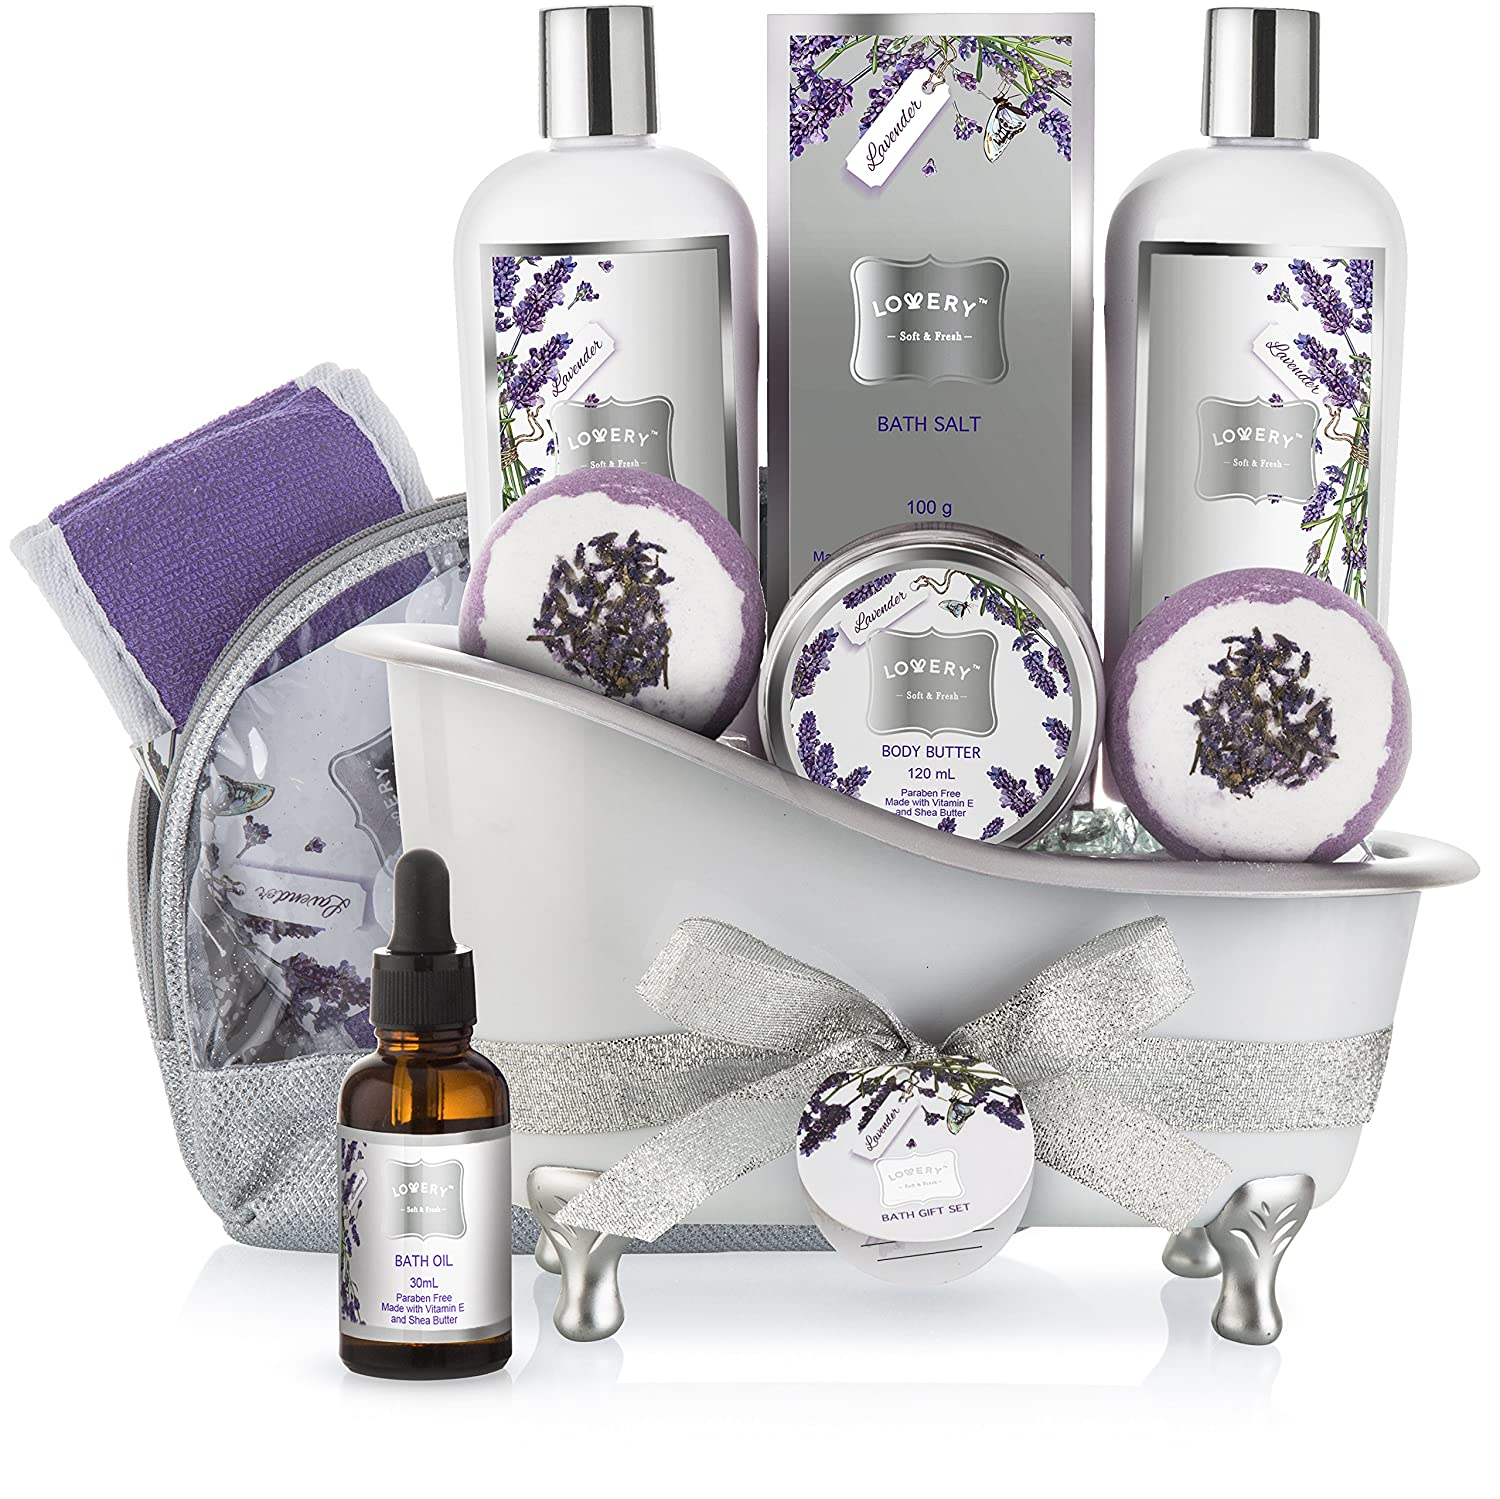 LOVERY Home Spa Kit review